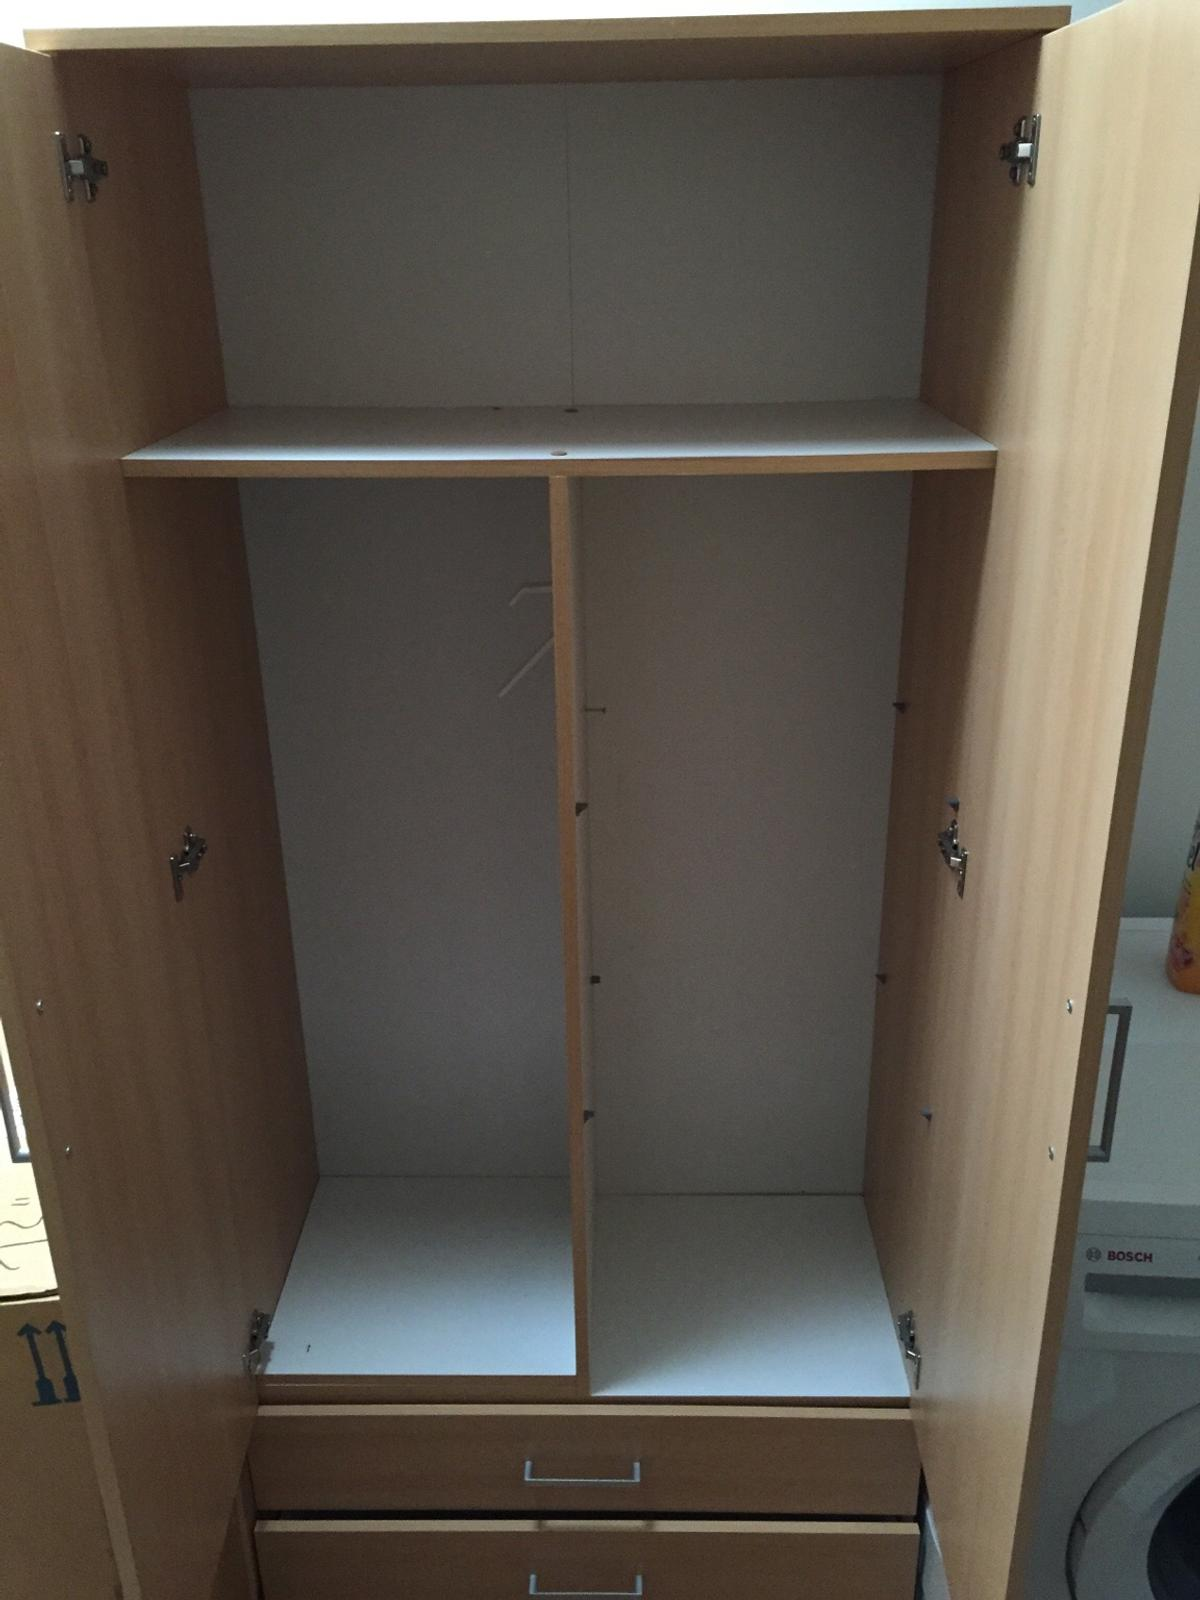 Abstellraum Schrank In 10405 Berlin For 15 00 For Sale Shpock